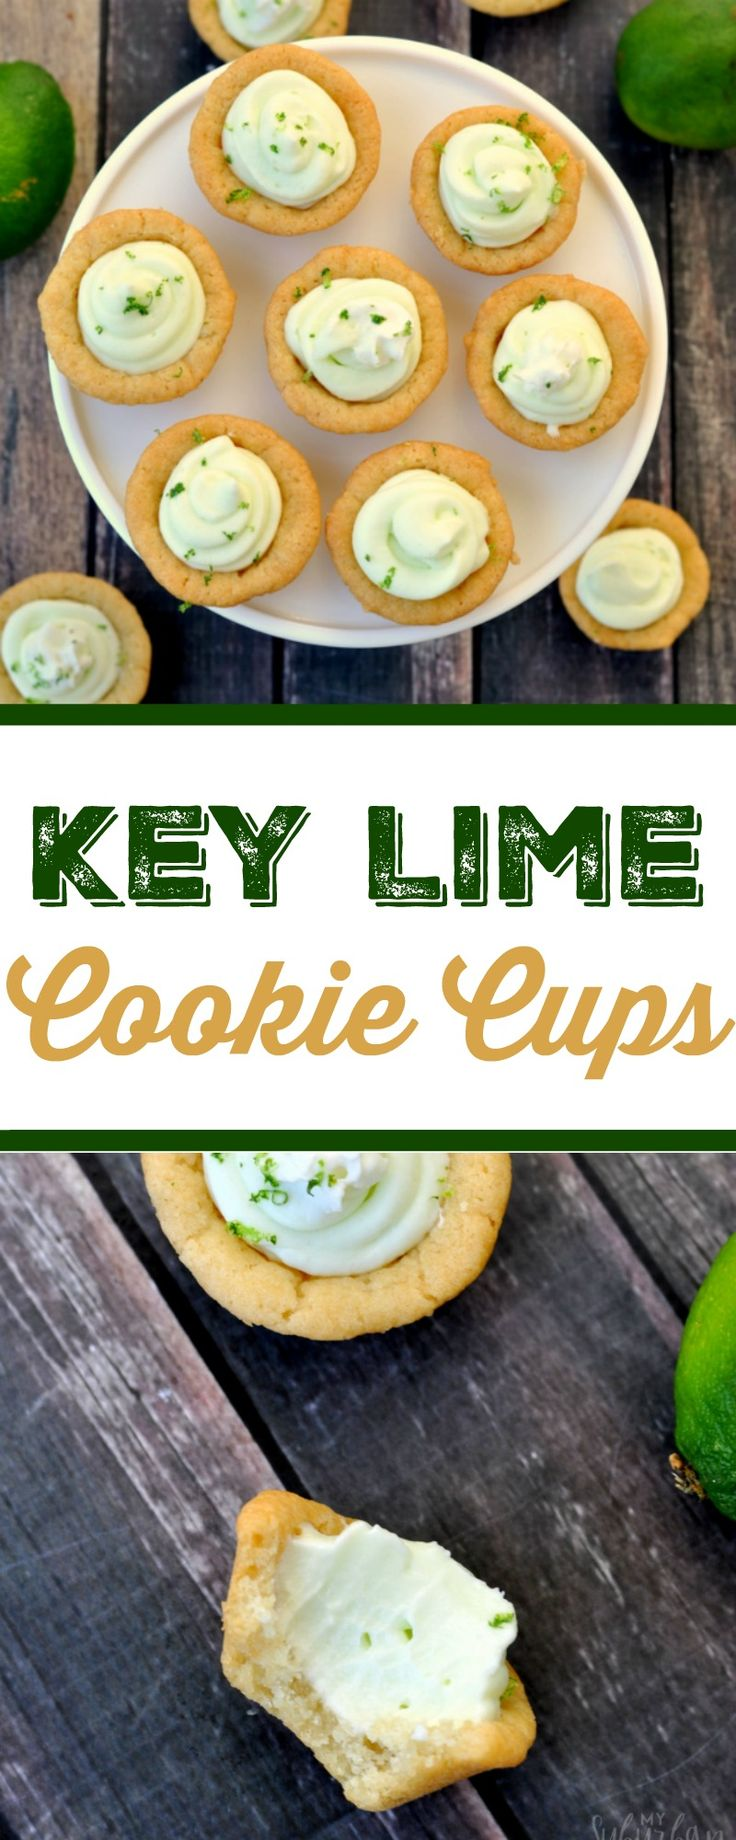 Key lime pie is my husband's favorite dessert. It gets a little makeover with this recipe for key lime cookie cups. Both are so delicious.